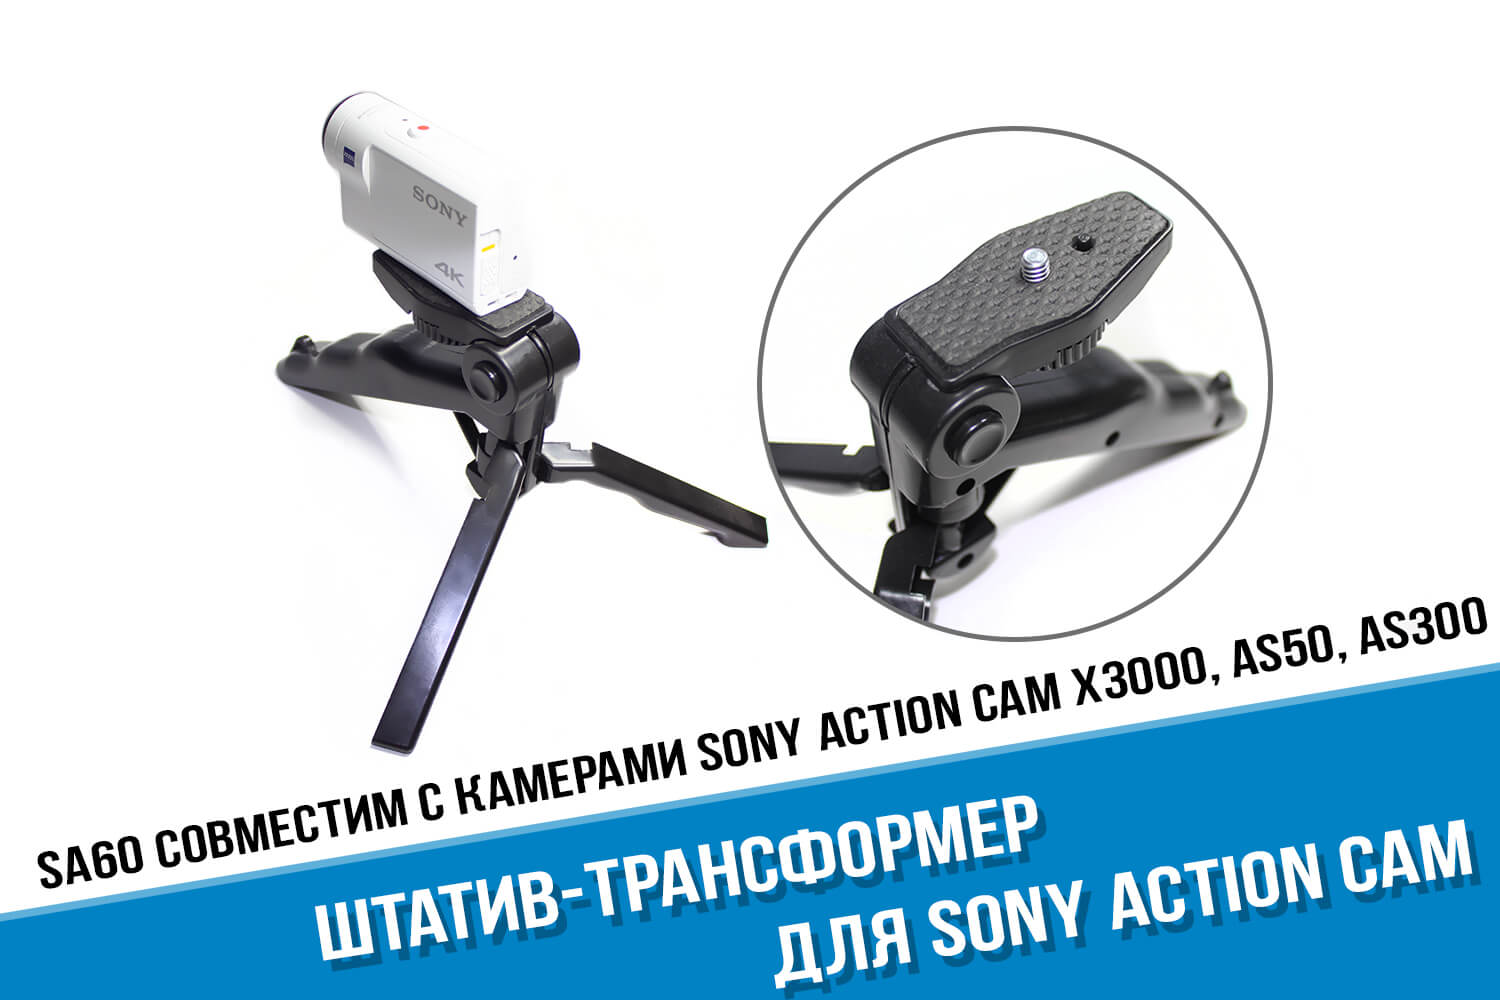 Трансформер-штатив для экшн-камеры Sony Action Cam